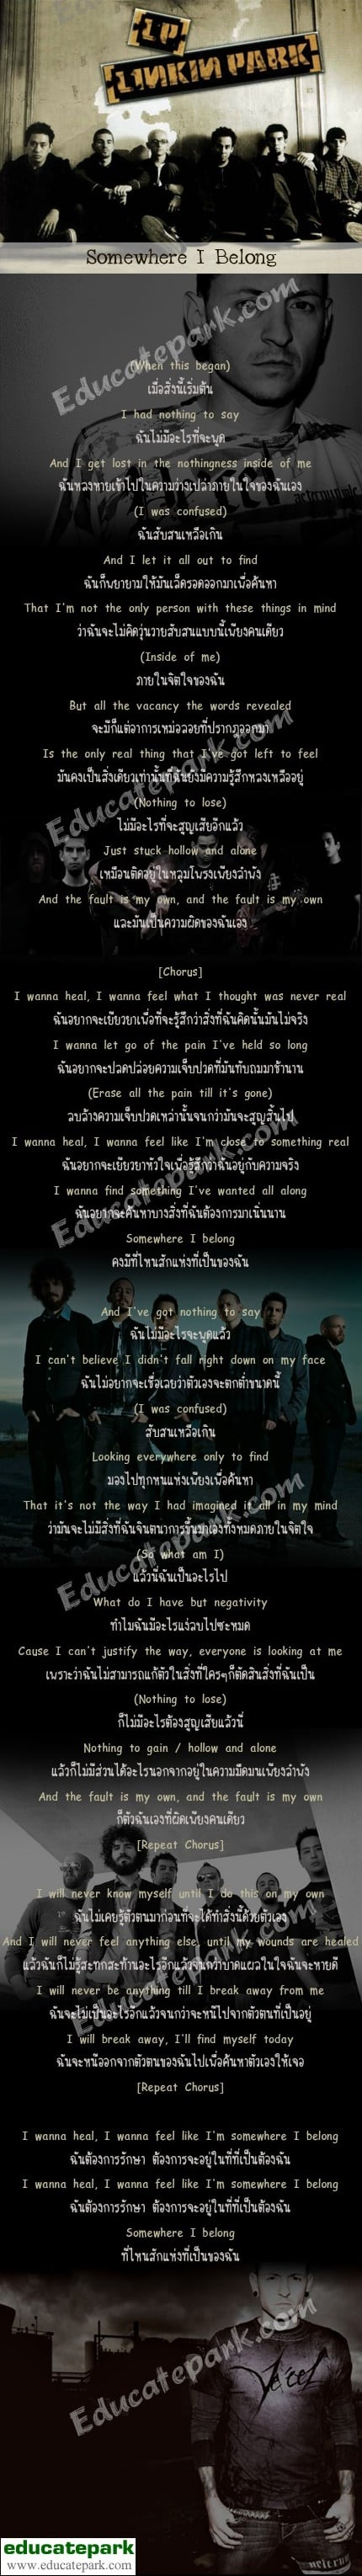 แปลเพลง Somewhere I Belong - Linkin Park